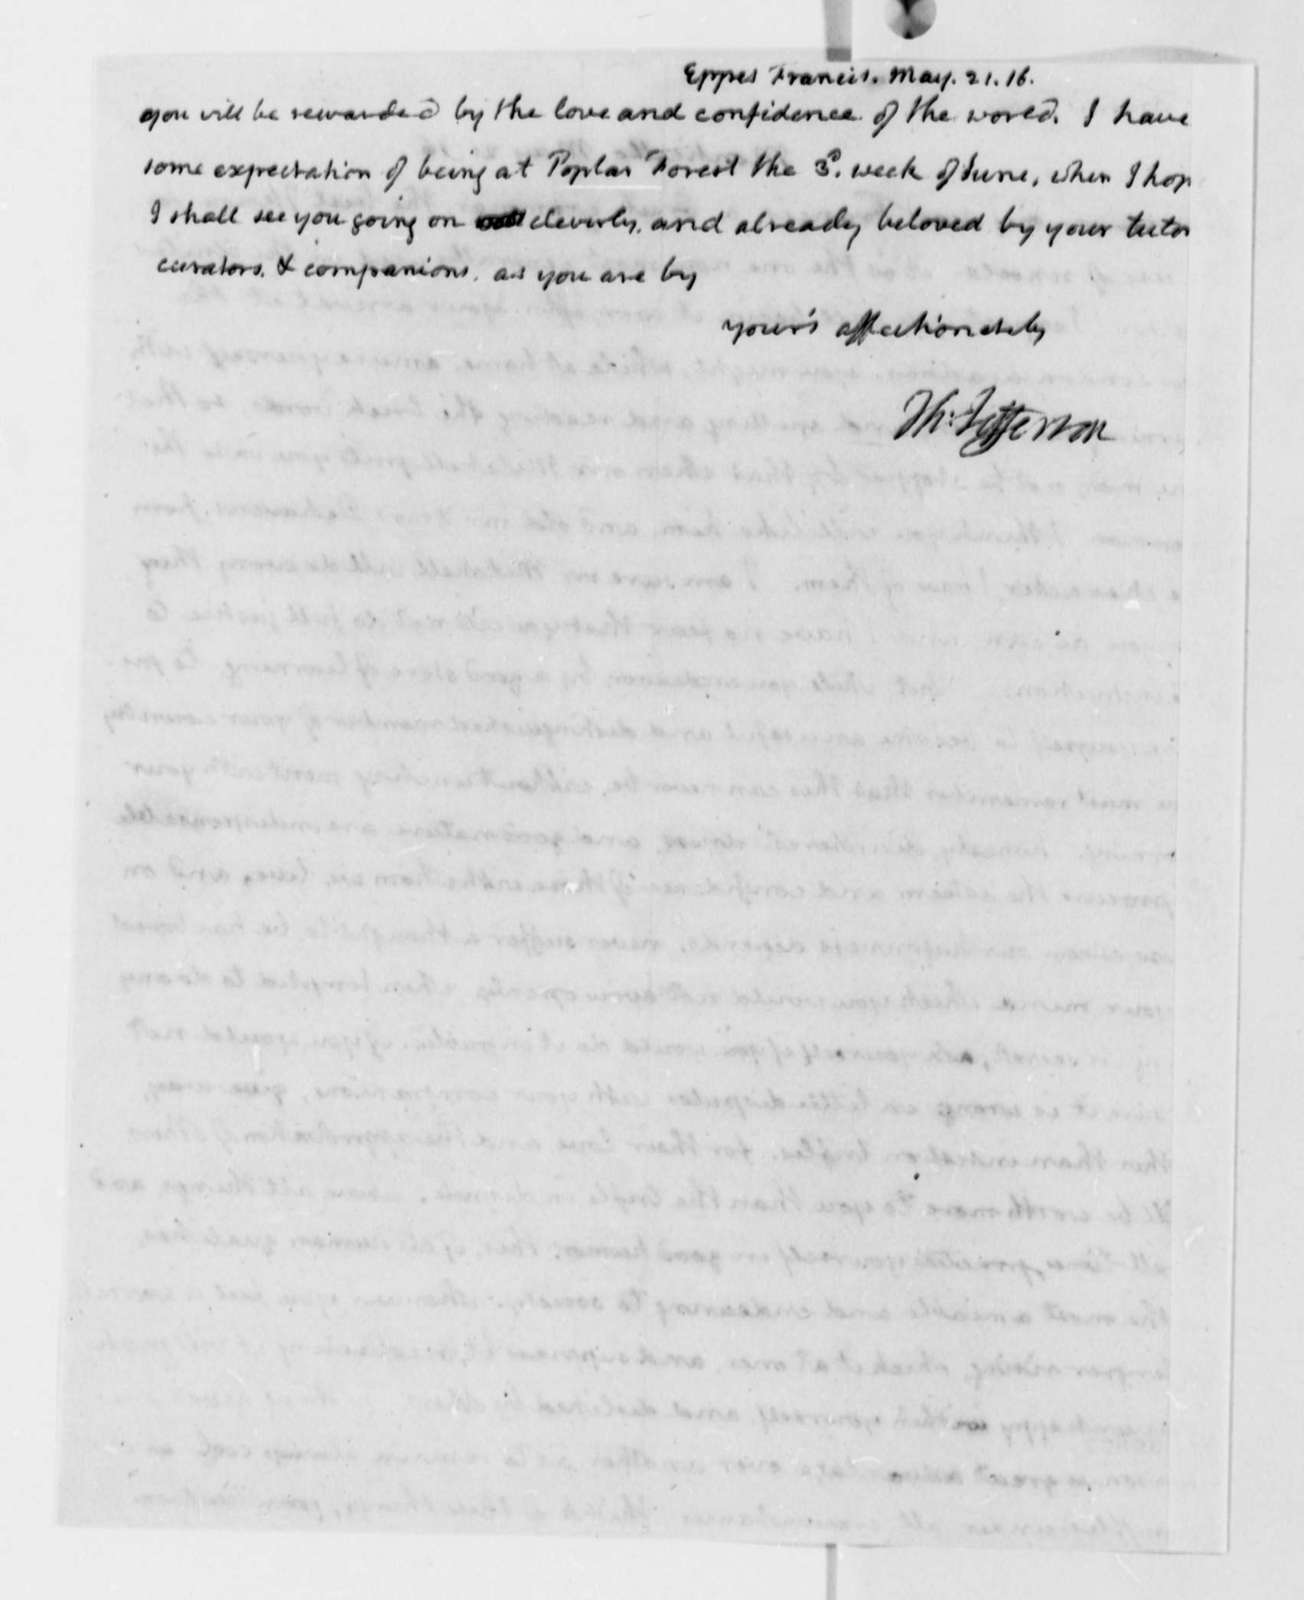 Thomas Jefferson to Francis Eppes, May 21, 1816, with Copy